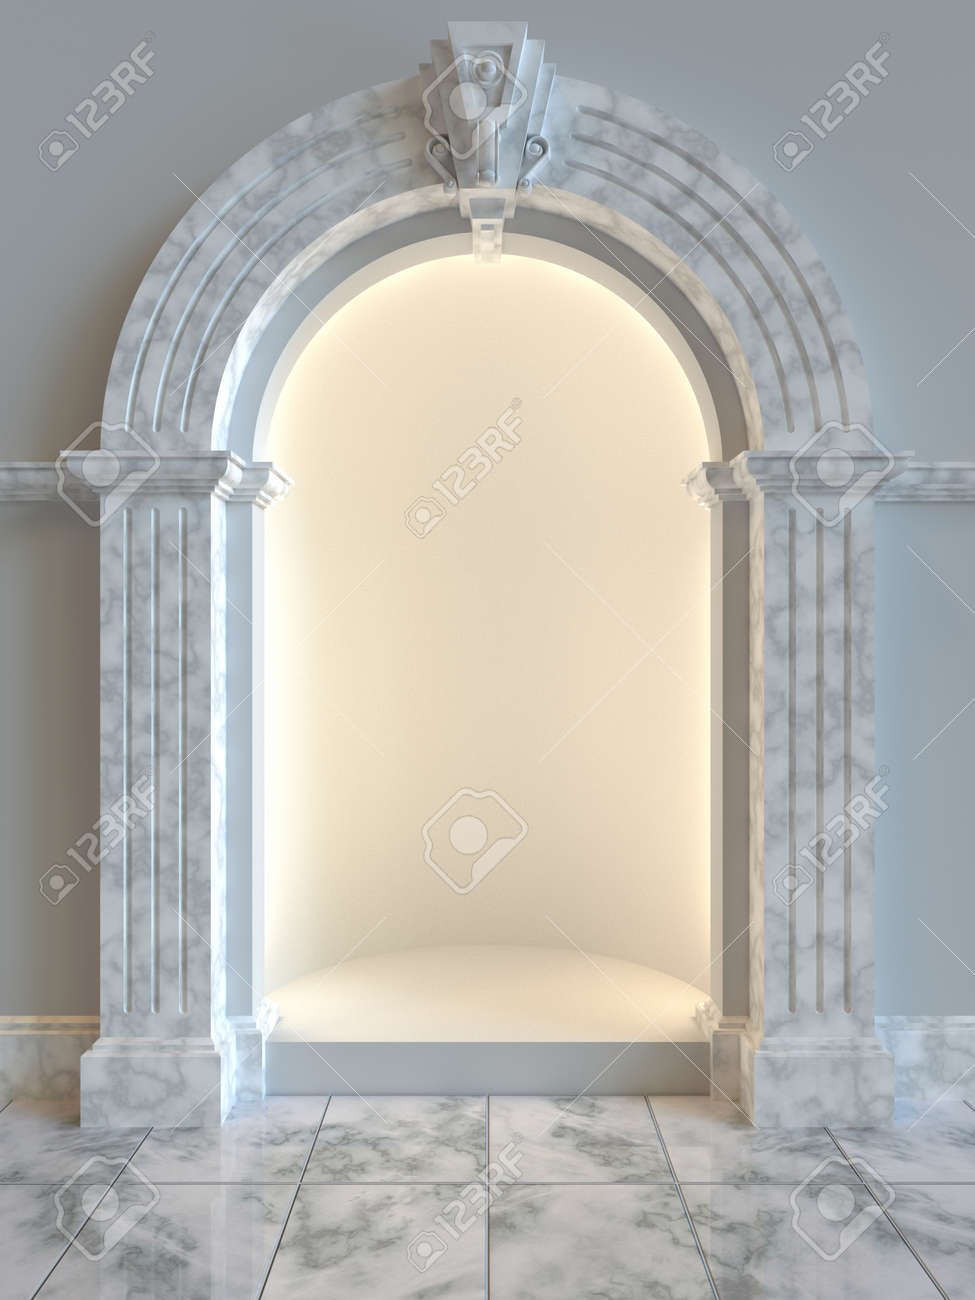 Classical style shop display left empty for product display Stock Photo - 22719558